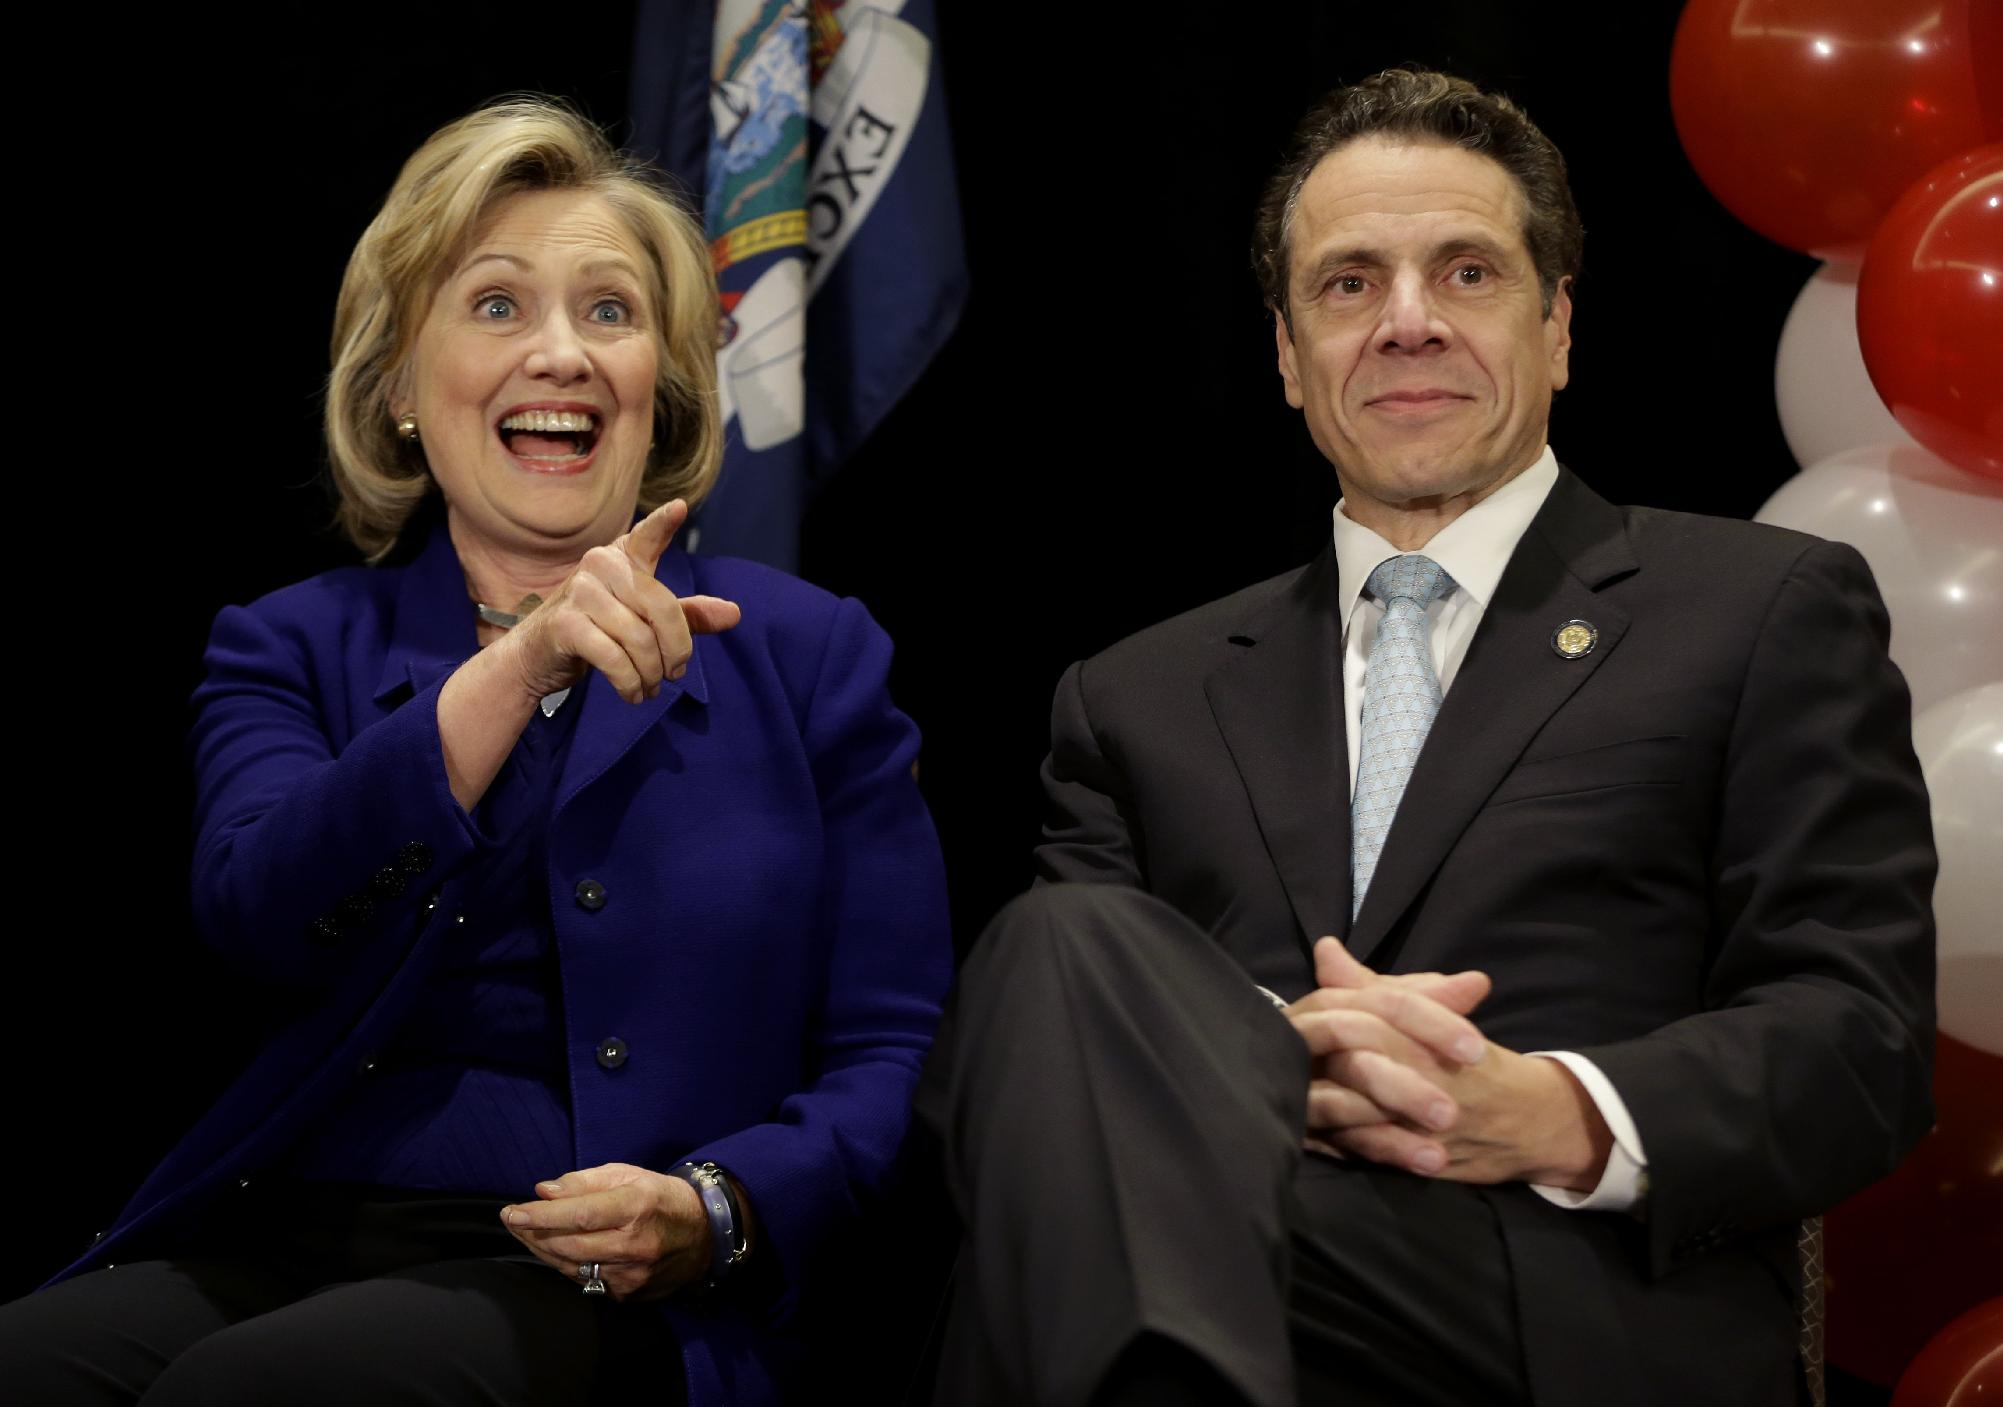 Clinton backs Gov. Cuomo; GOP foe claims momentum